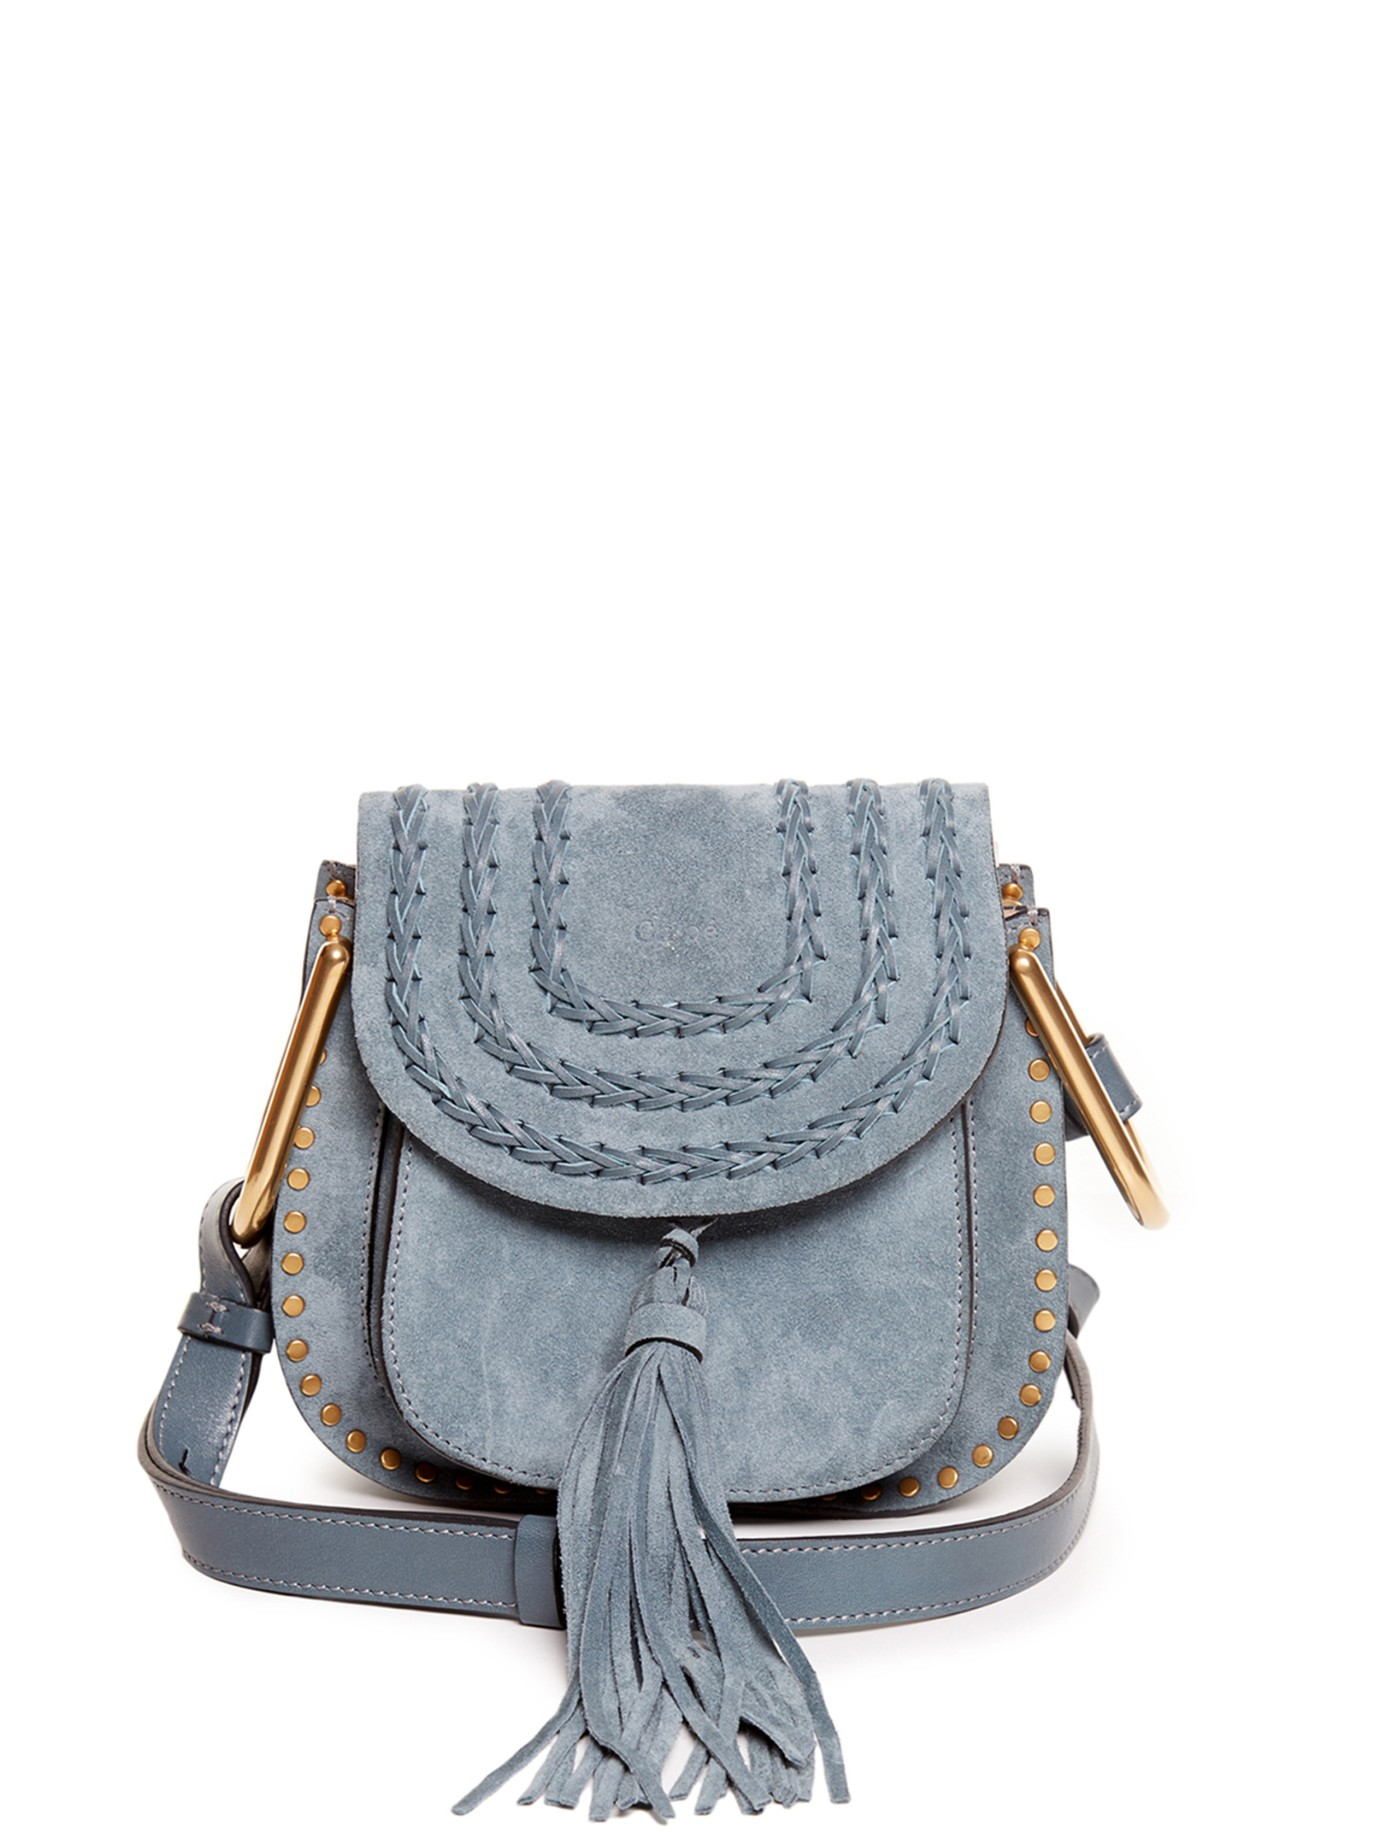 chlo hudson suede cross body bag in blue lyst. Black Bedroom Furniture Sets. Home Design Ideas